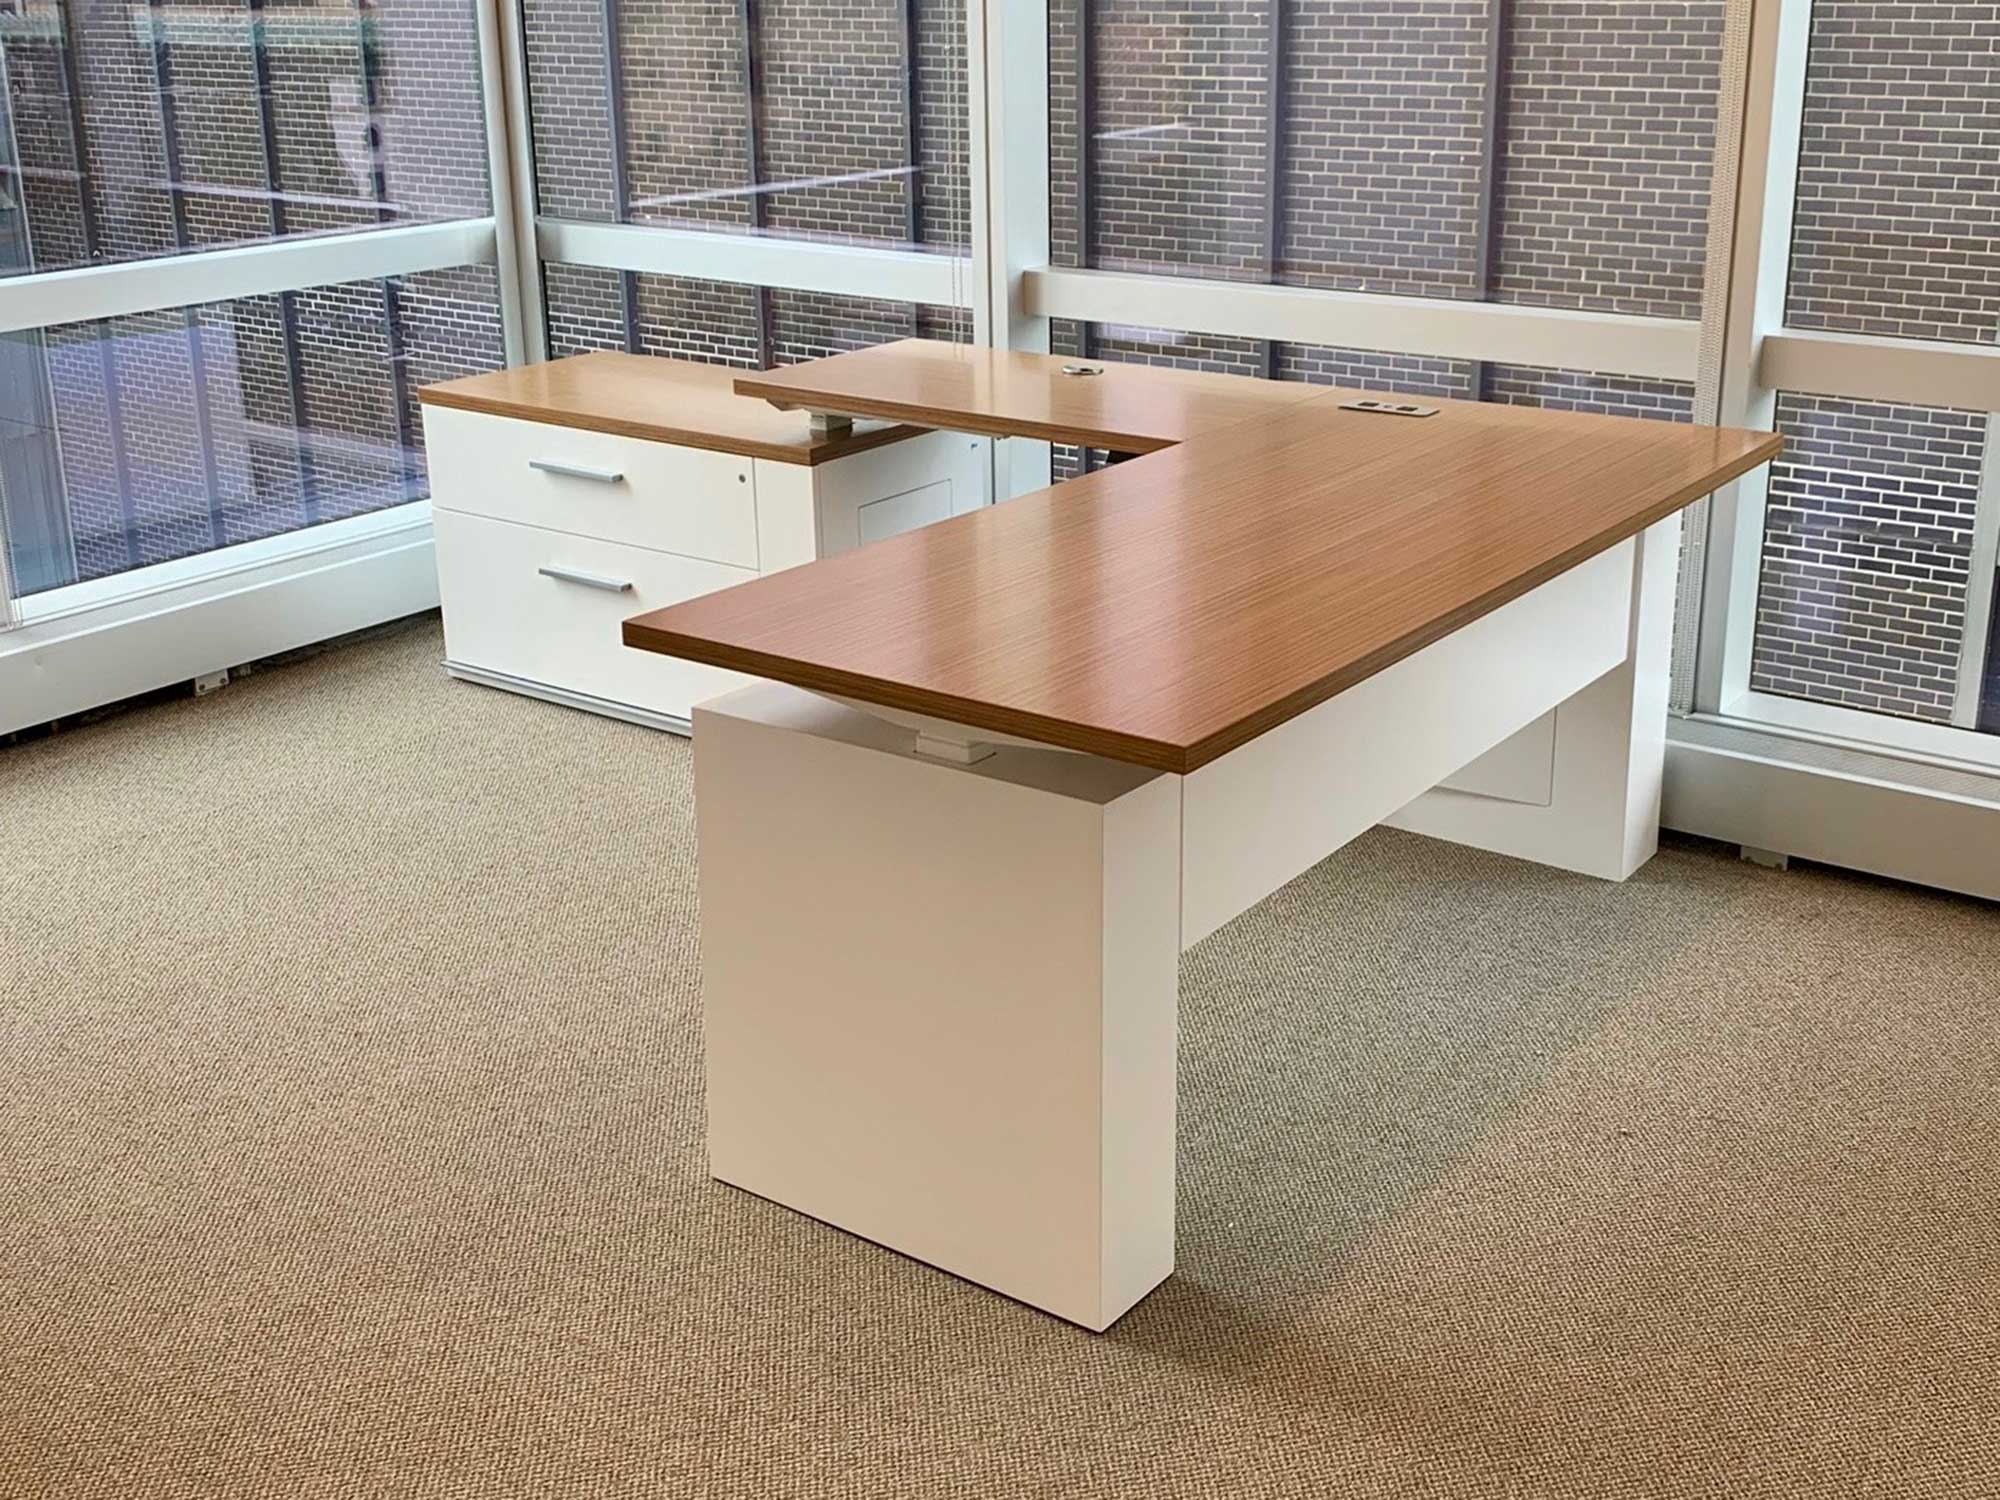 Konnect adjustable height sit-to-stand private office desk